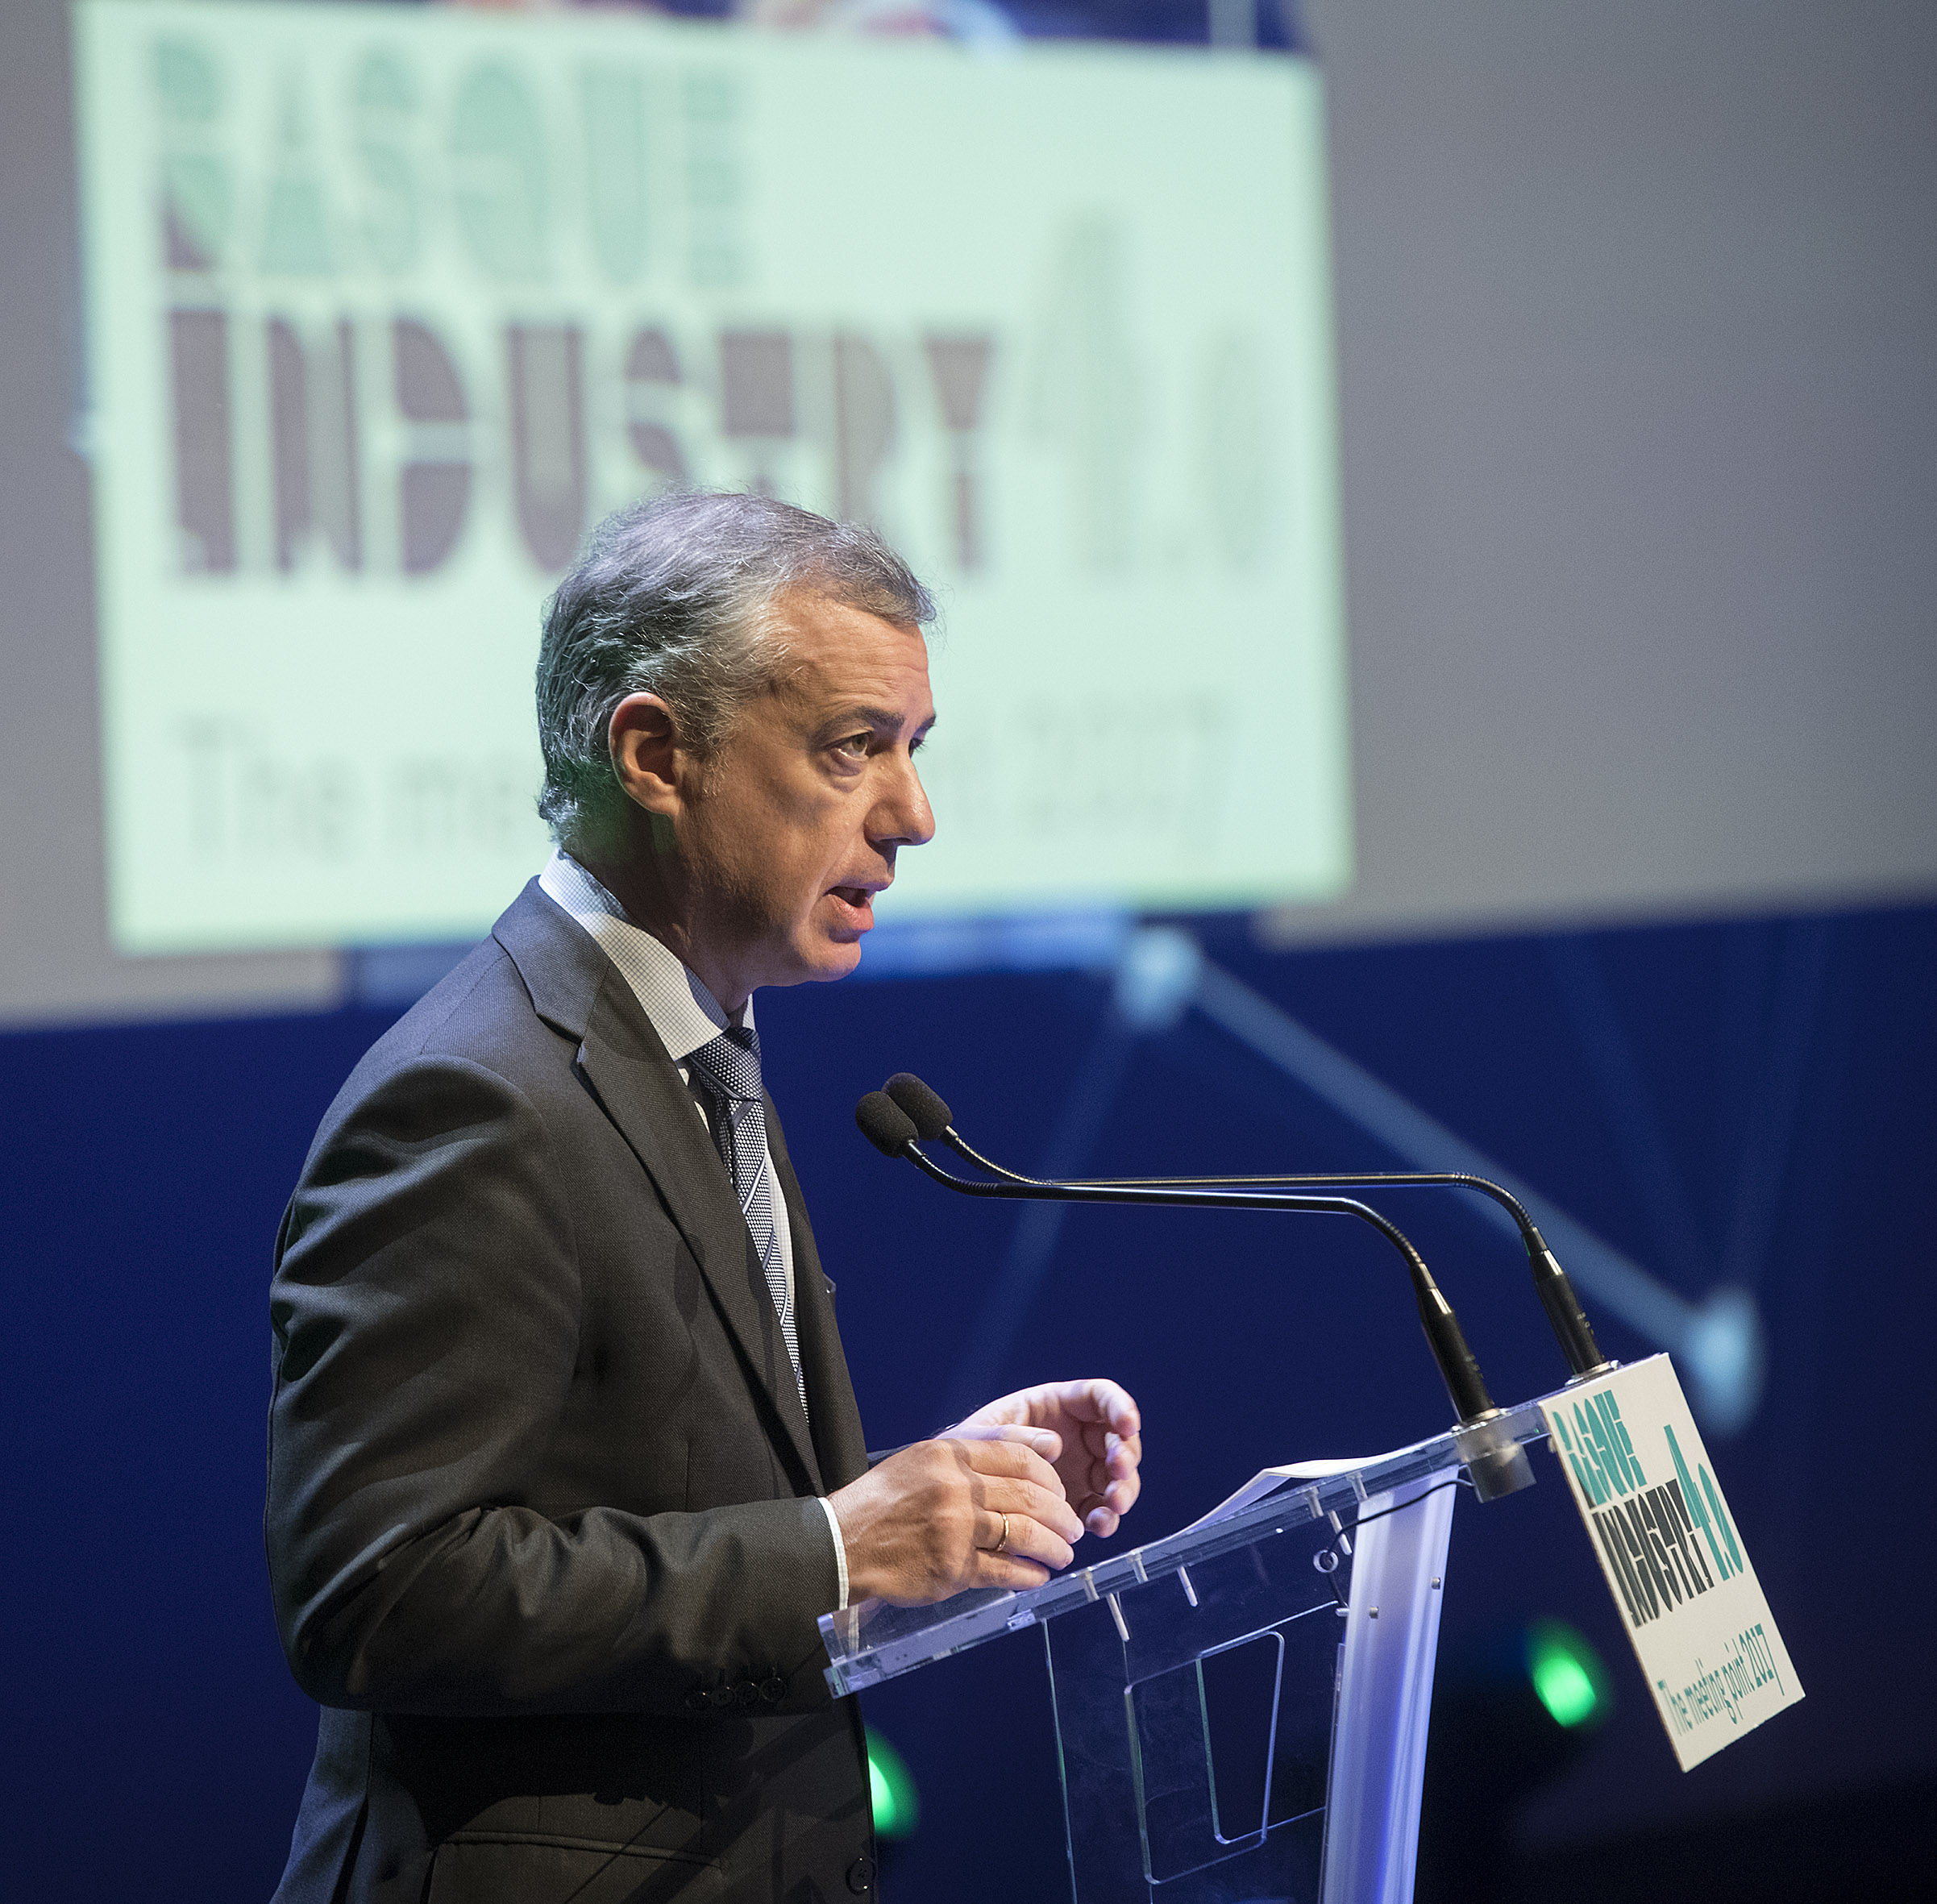 171122_lhk_basque_industry_06.jpg